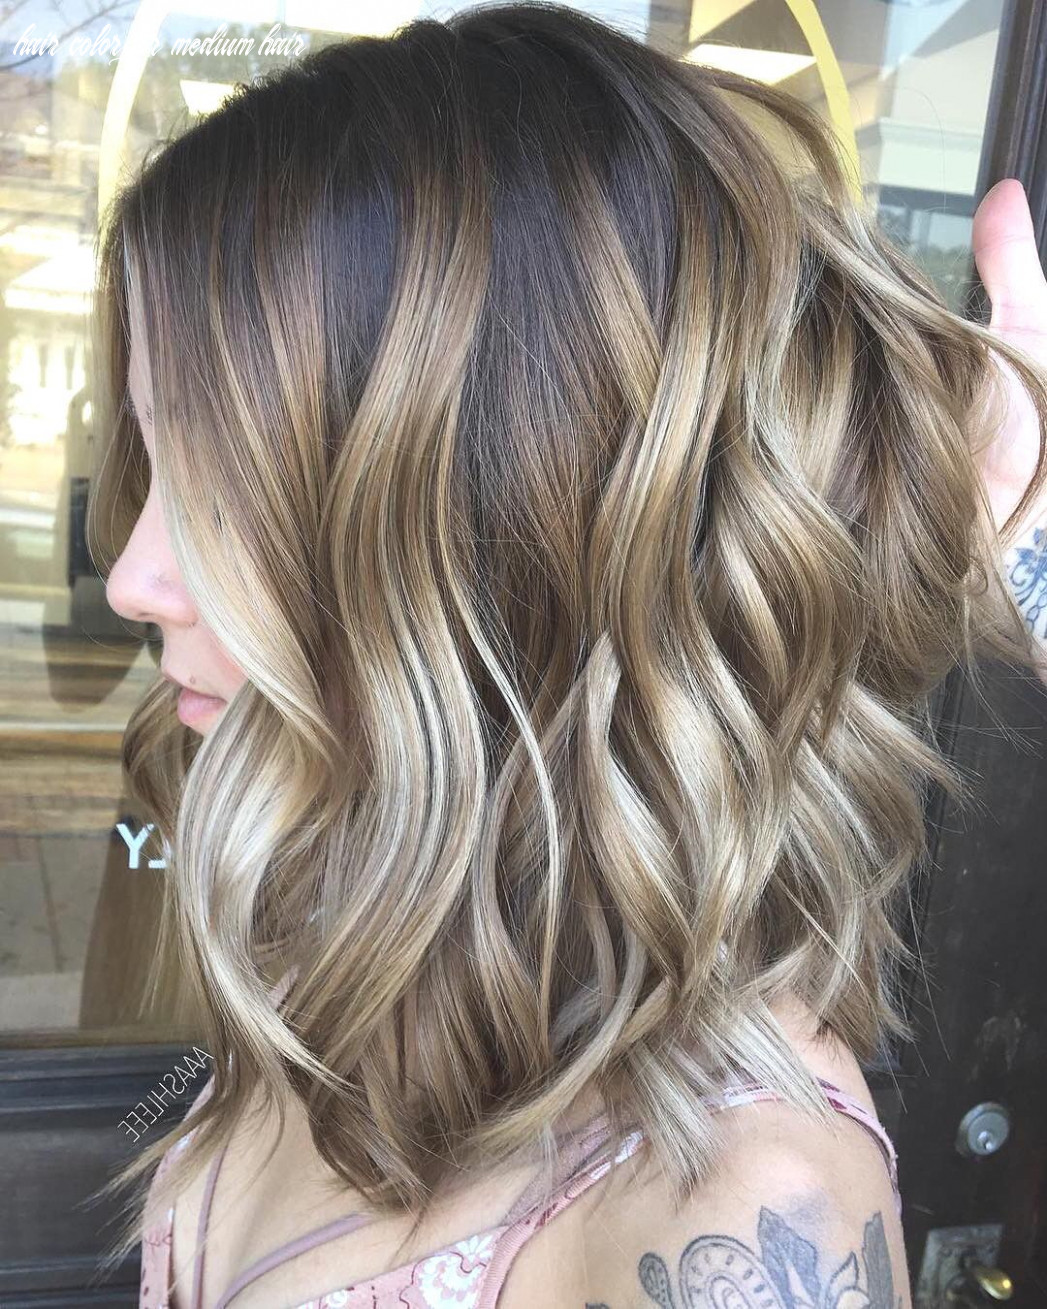 Exciting medium length layered haircuts in 10 hairstyles ombre